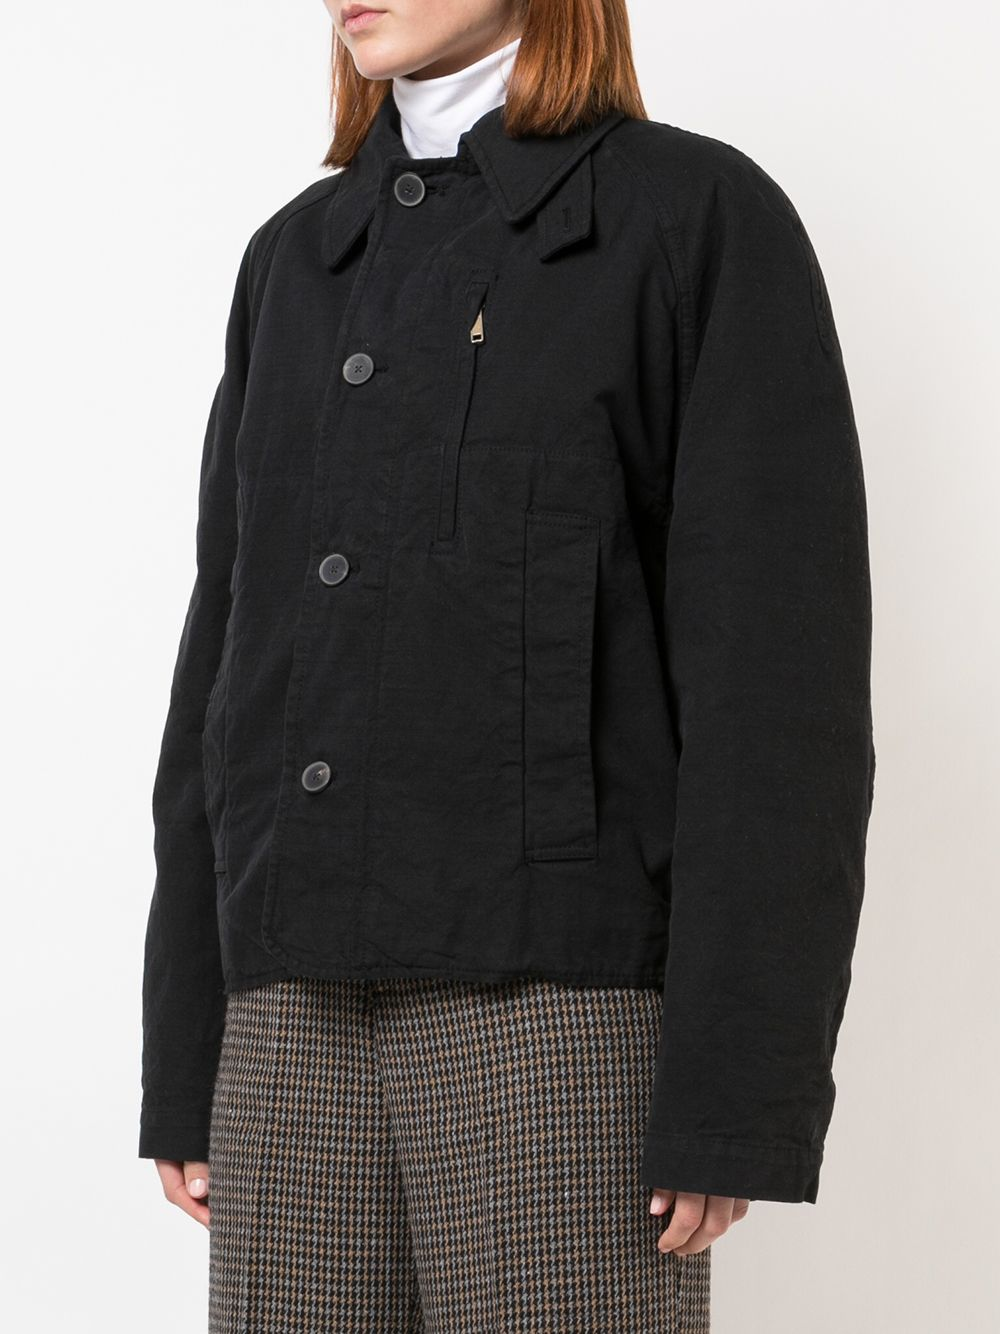 HAIDER ACKERMANN WOMEN OVERSIZED JACKET 184-5008-145-096